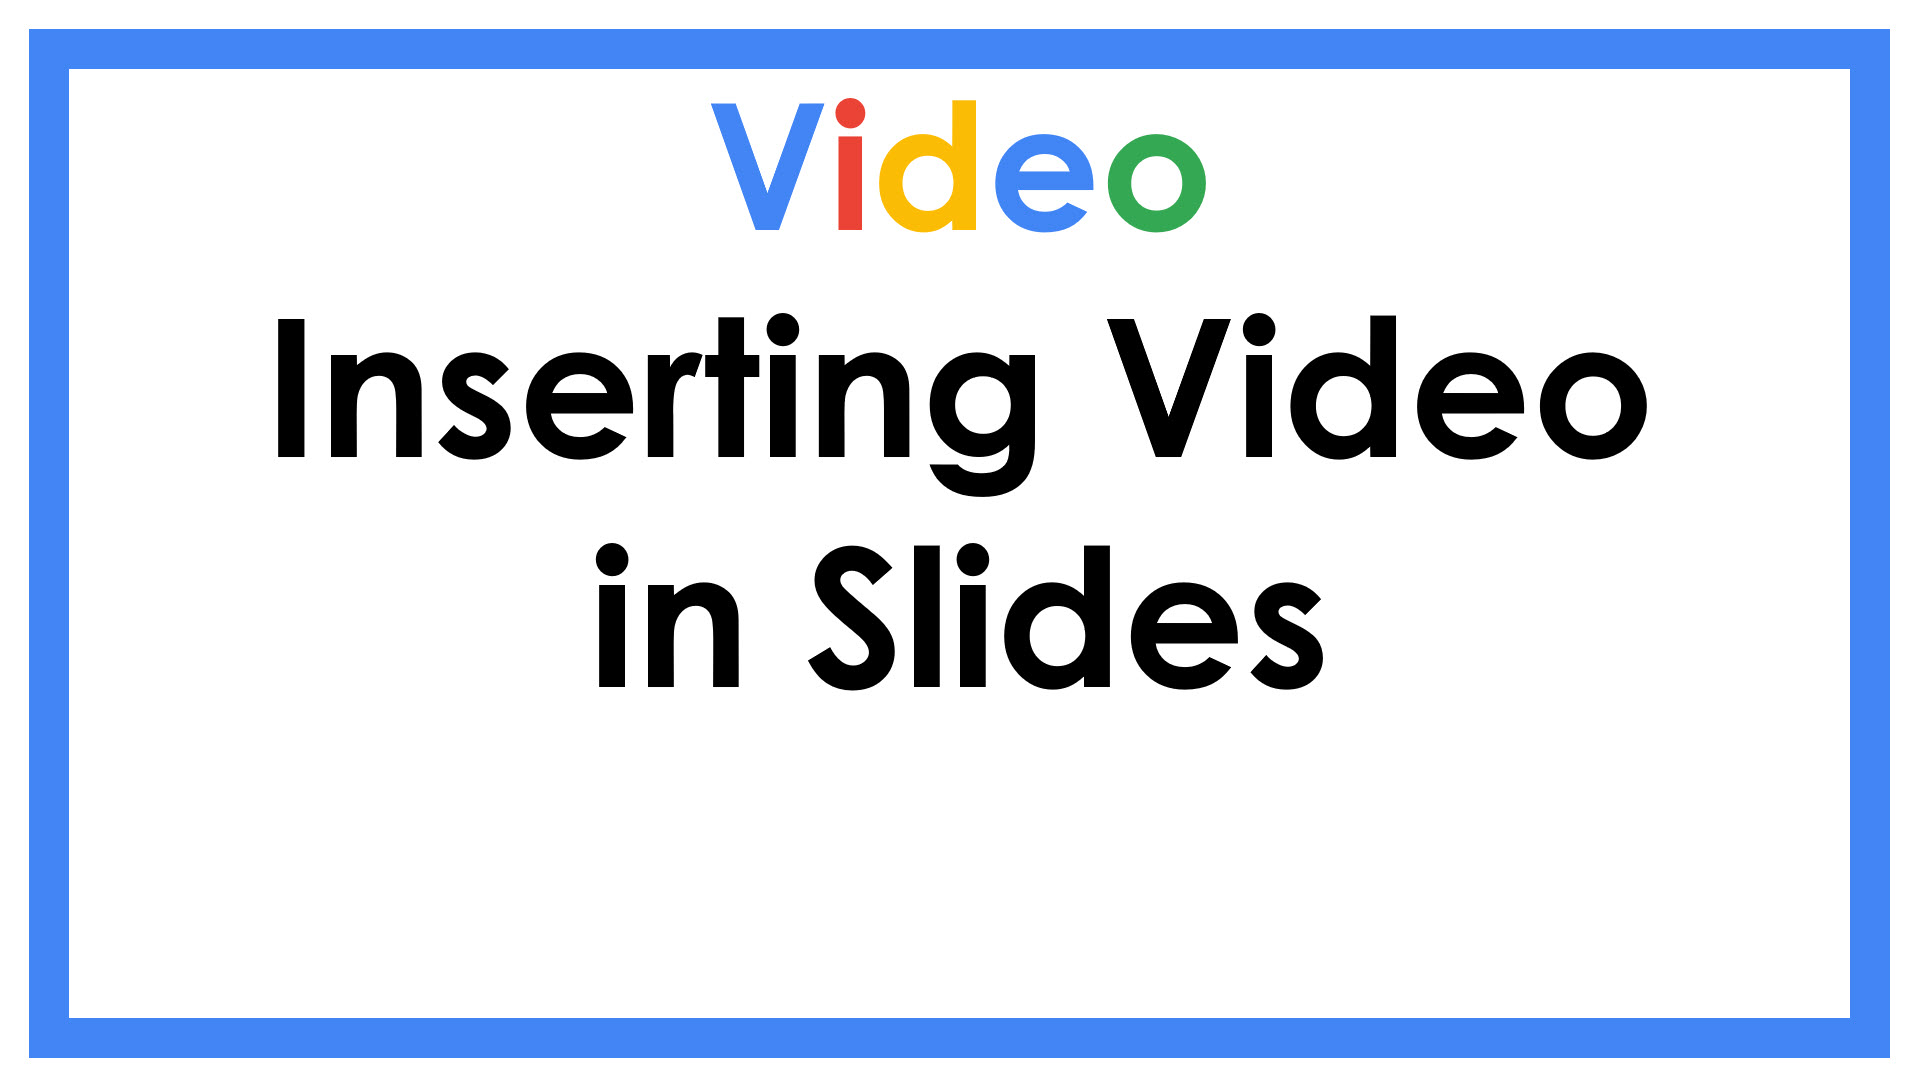 Inserting Video in Slides